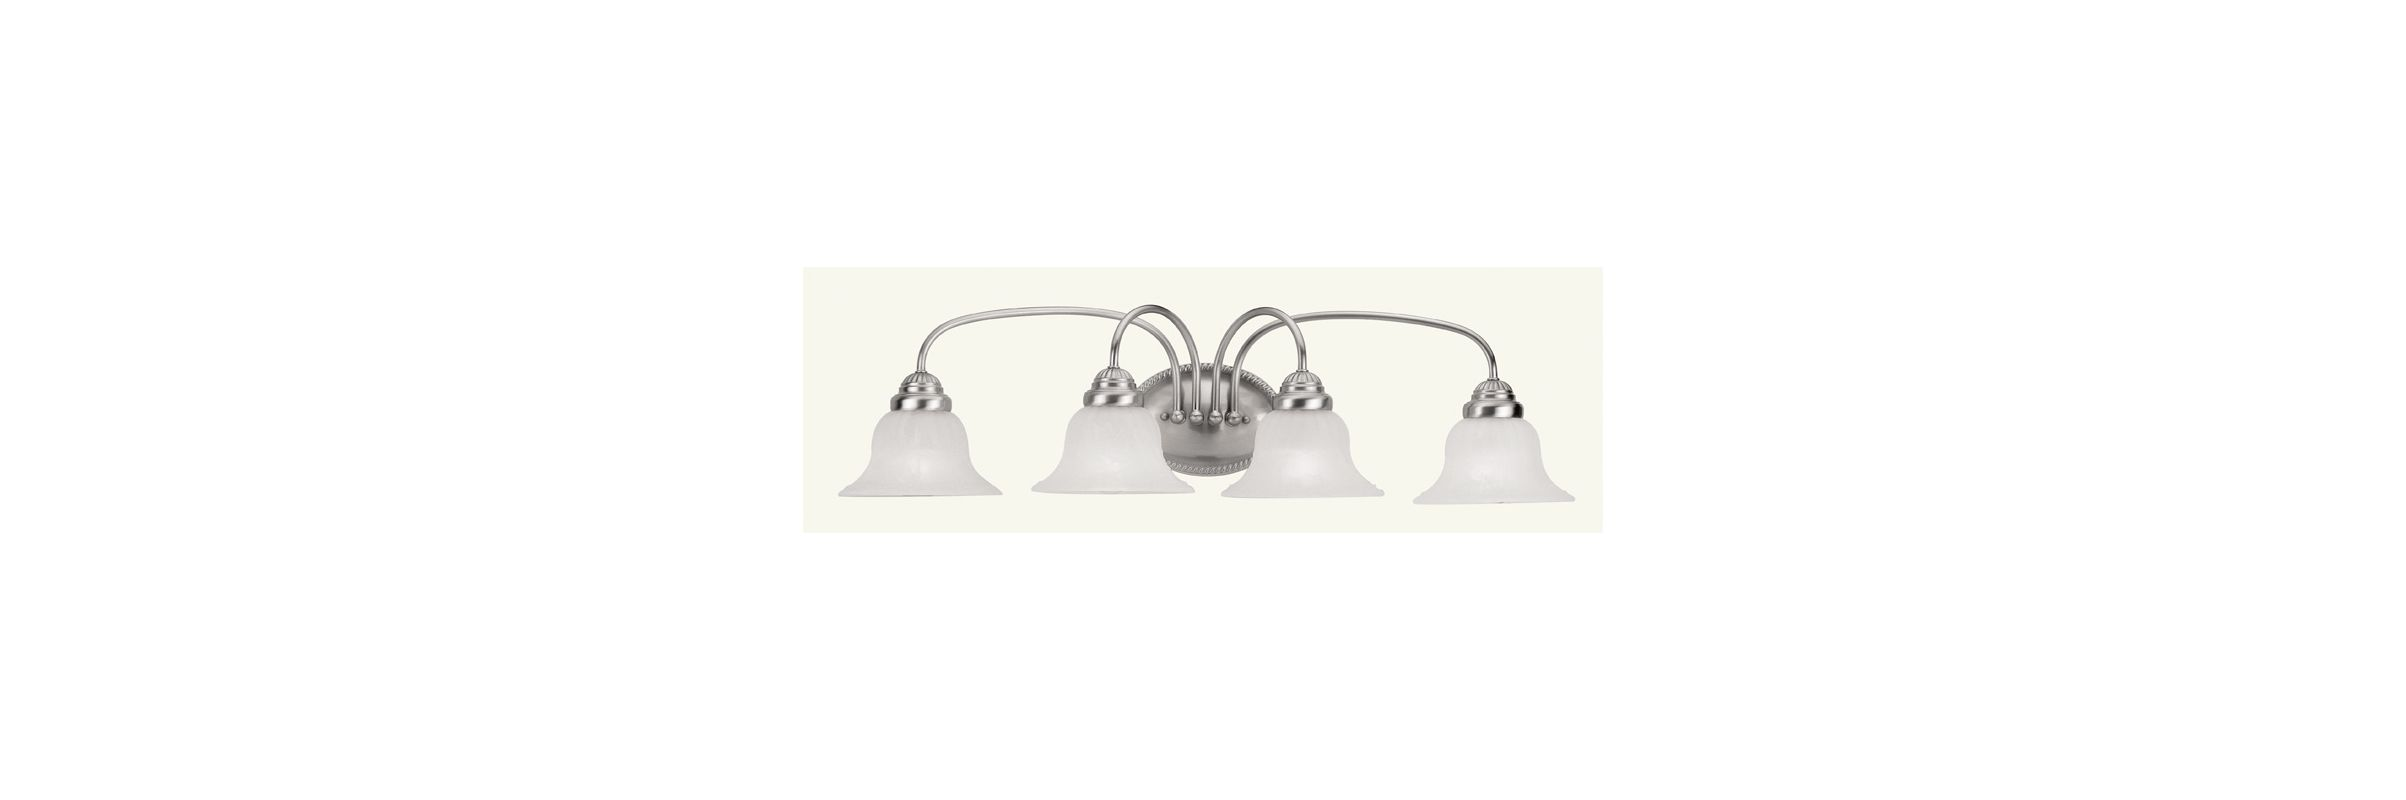 Bathroom Vanity Lights Facing Up Or Down : Livex Lighting 1534-91 Brushed Nickel Edgemont Bathroom Vanity Bar with 4 Lights ...